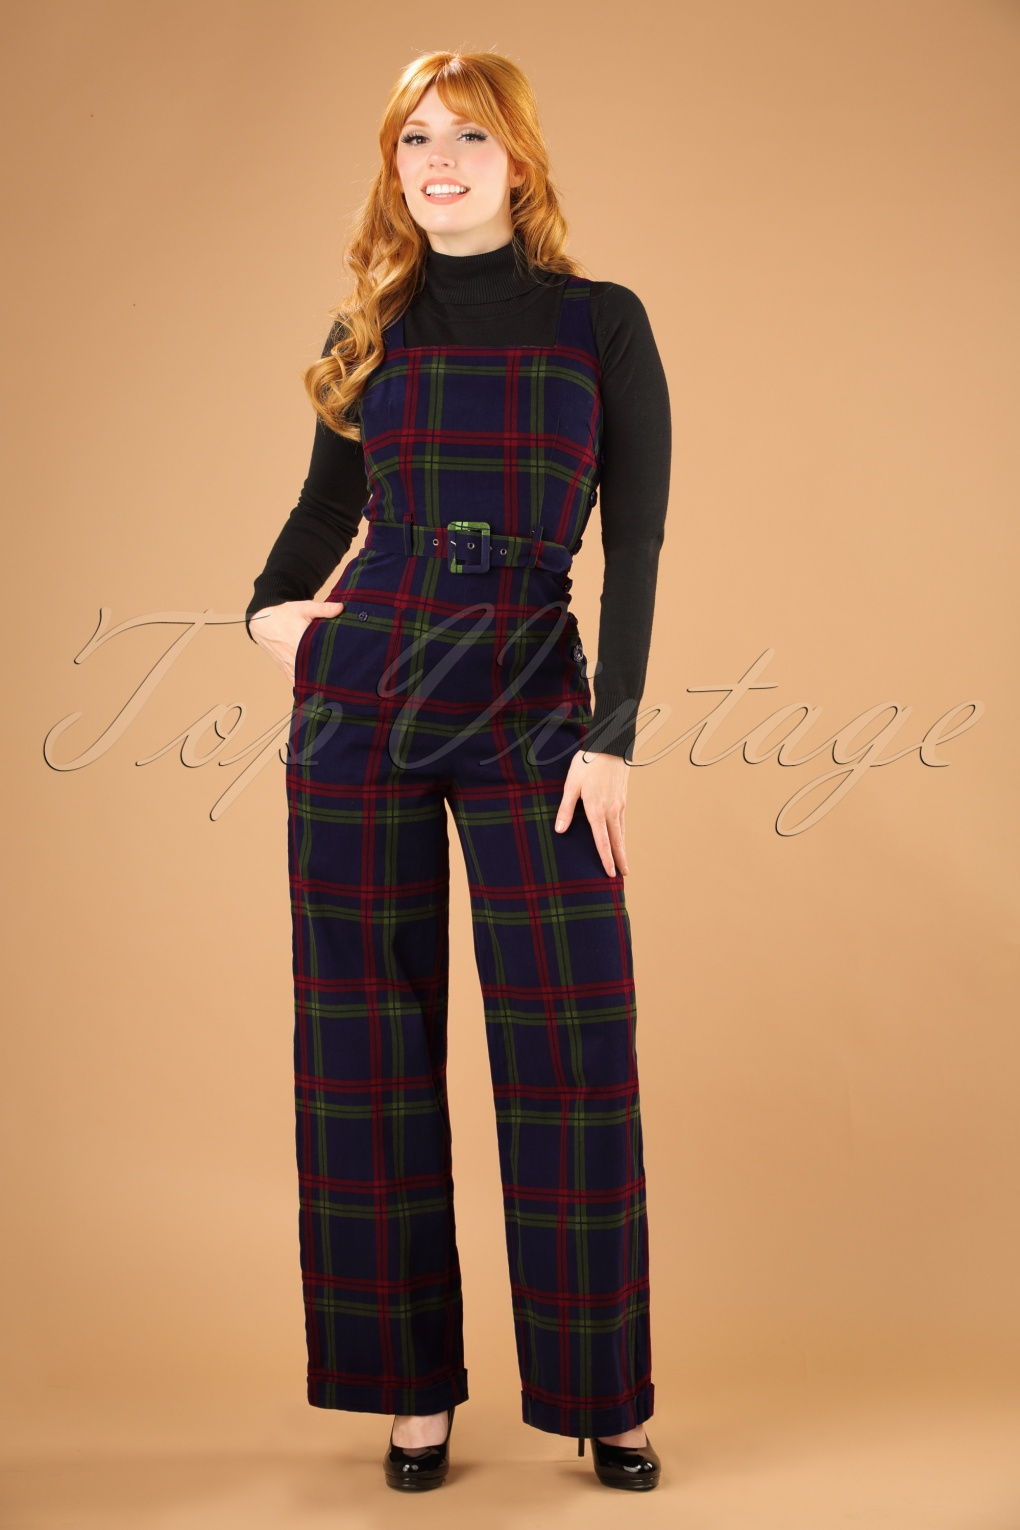 Vintage High Waisted Trousers, Sailor Pants, Jeans 40s Gertrude Darling Check Overalls in Navy £76.38 AT vintagedancer.com